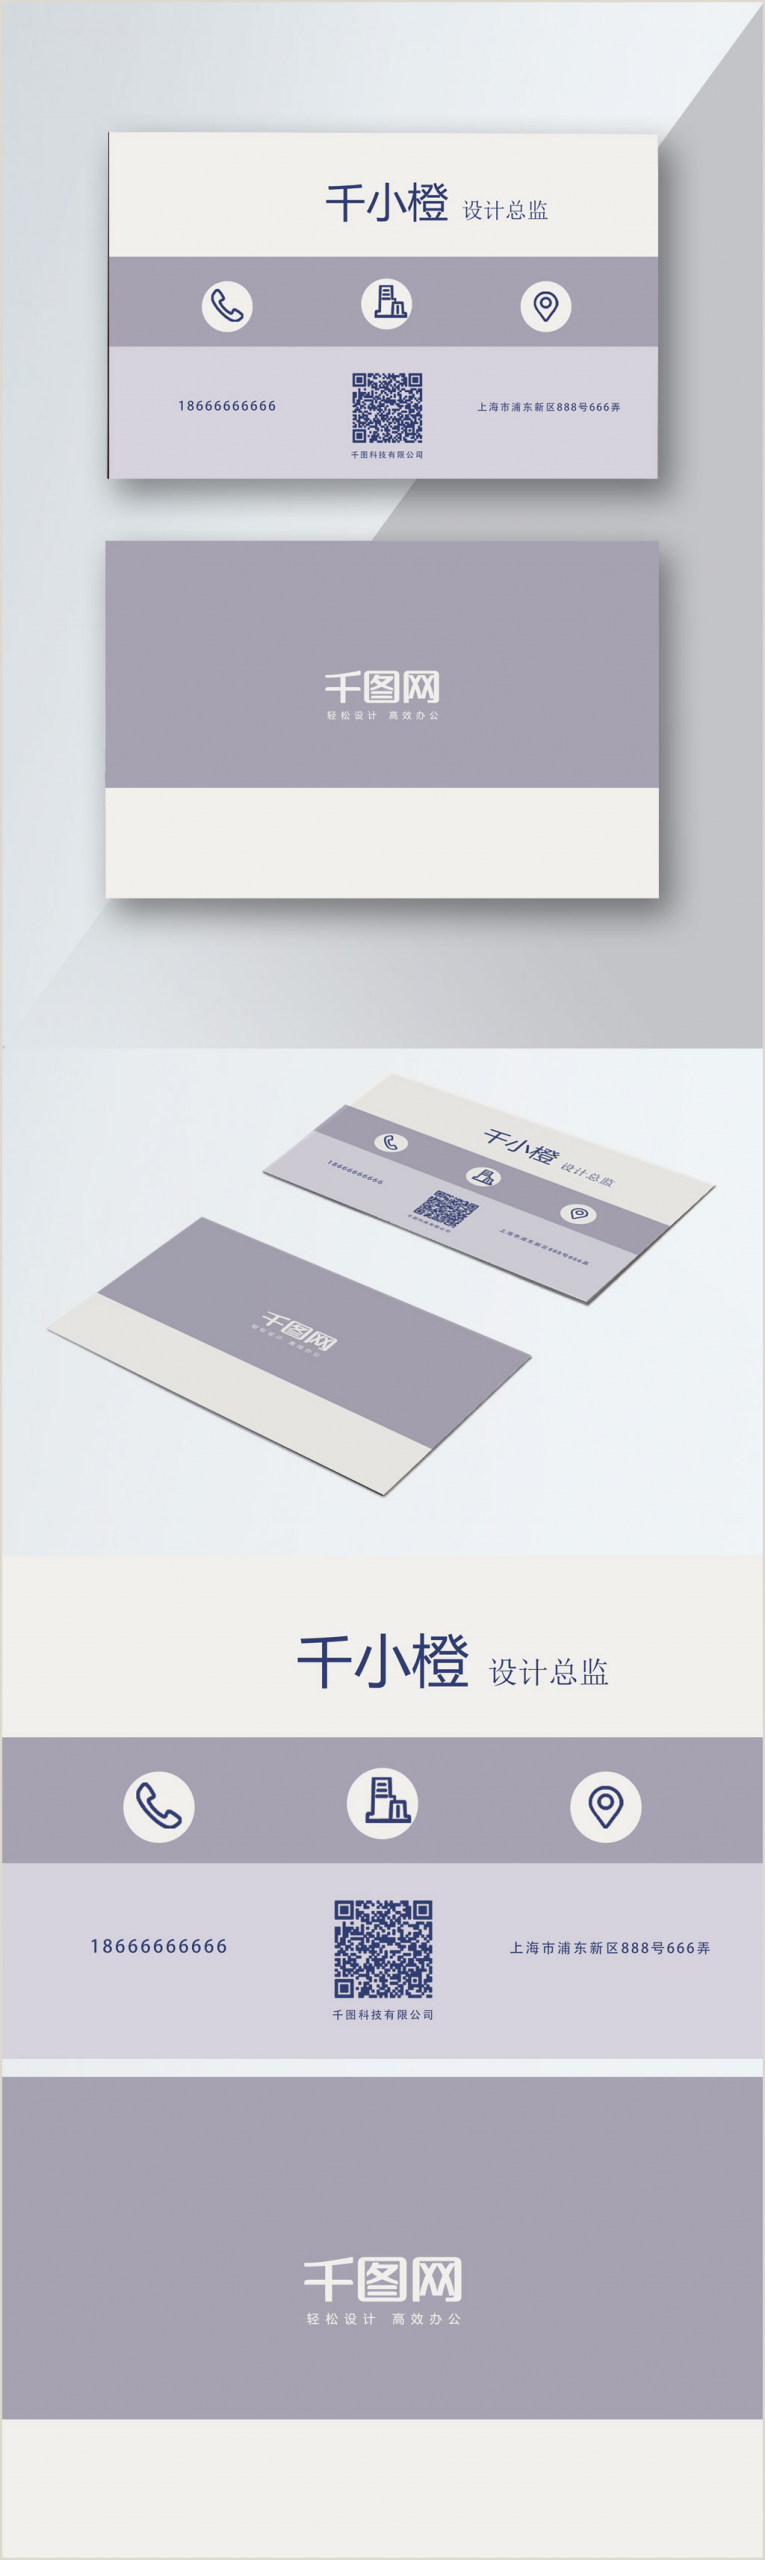 We Buy Houses Business Card Templates Home Er Business Card Template Image Picture Free